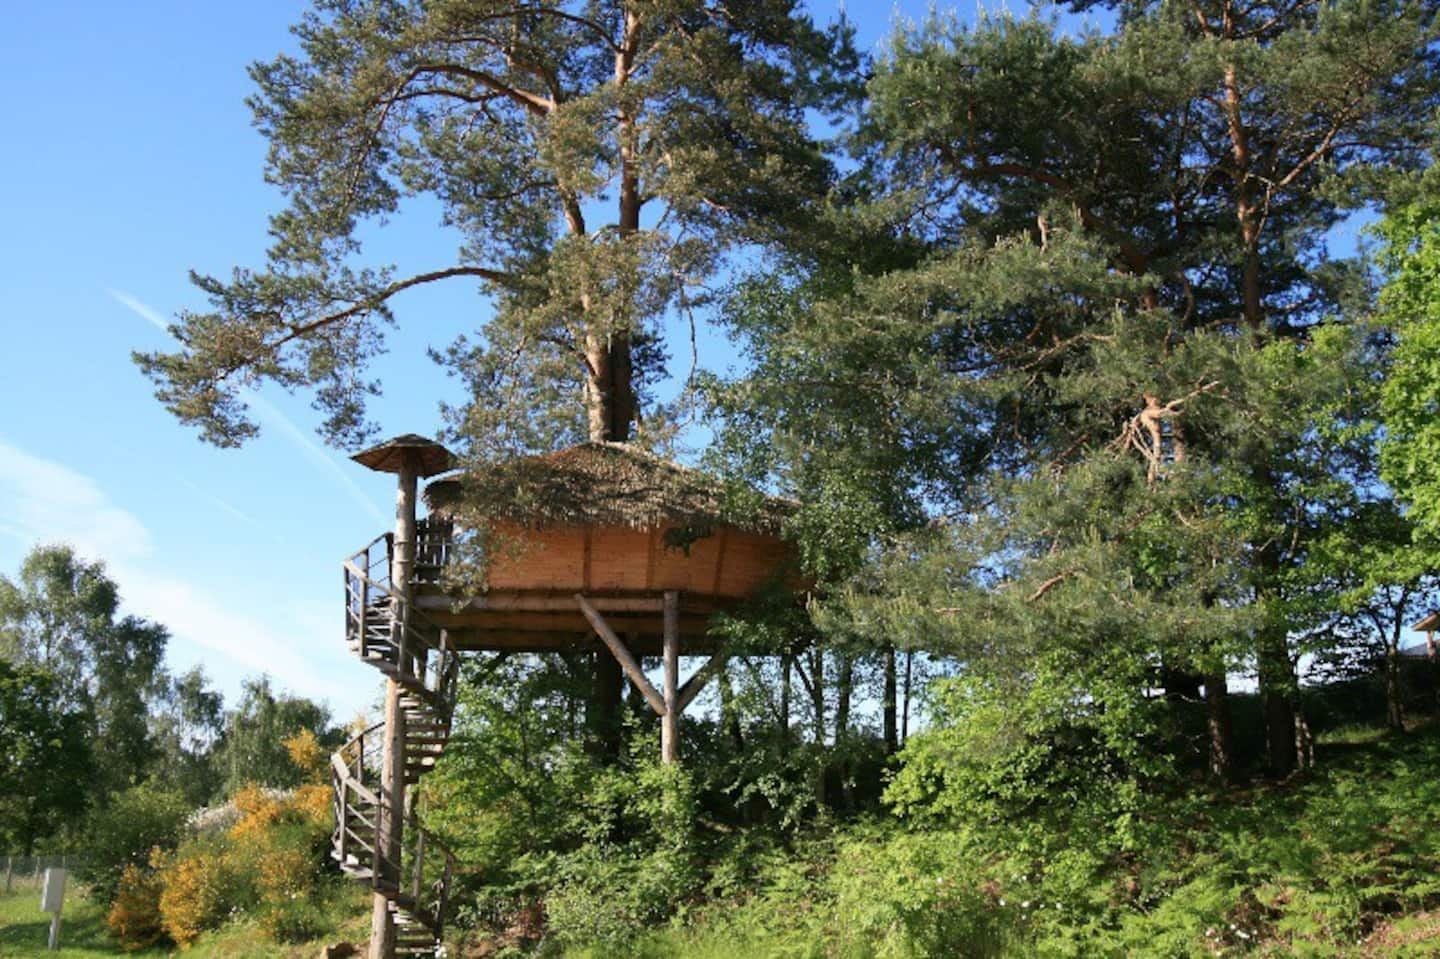 Lakefront Treehouse in France Rental Airbnb